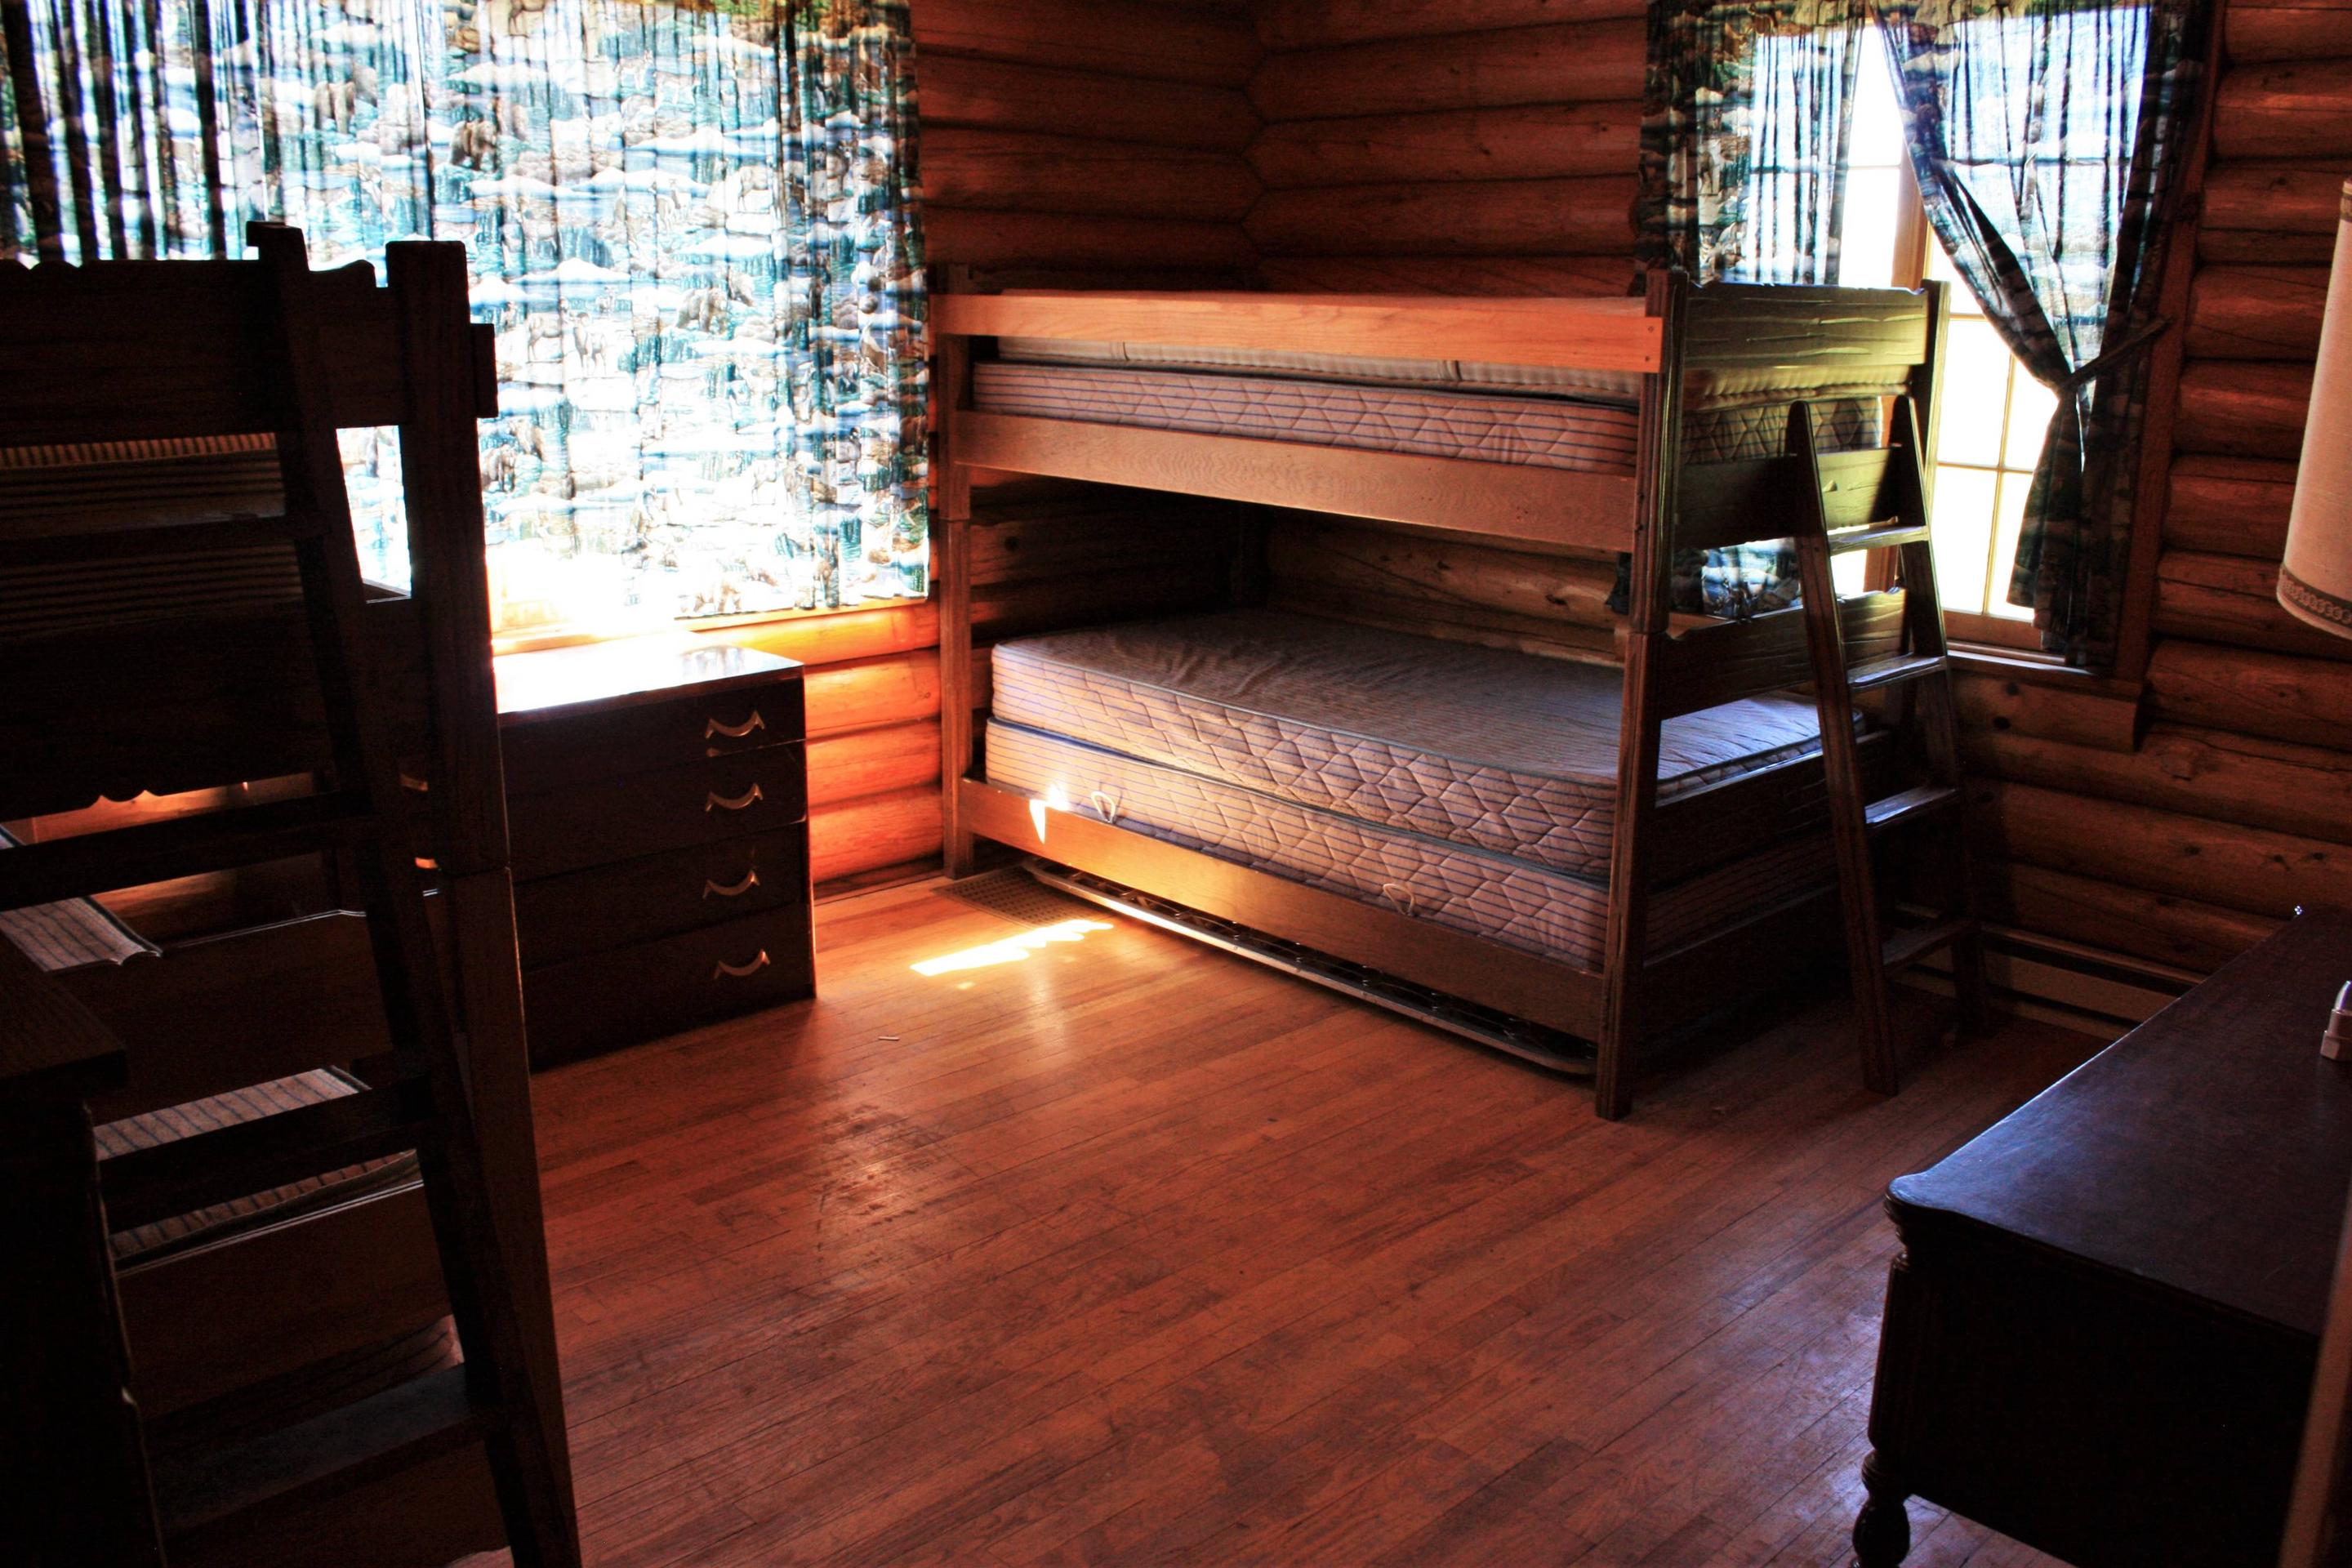 Keystone Ranger Station bedroom